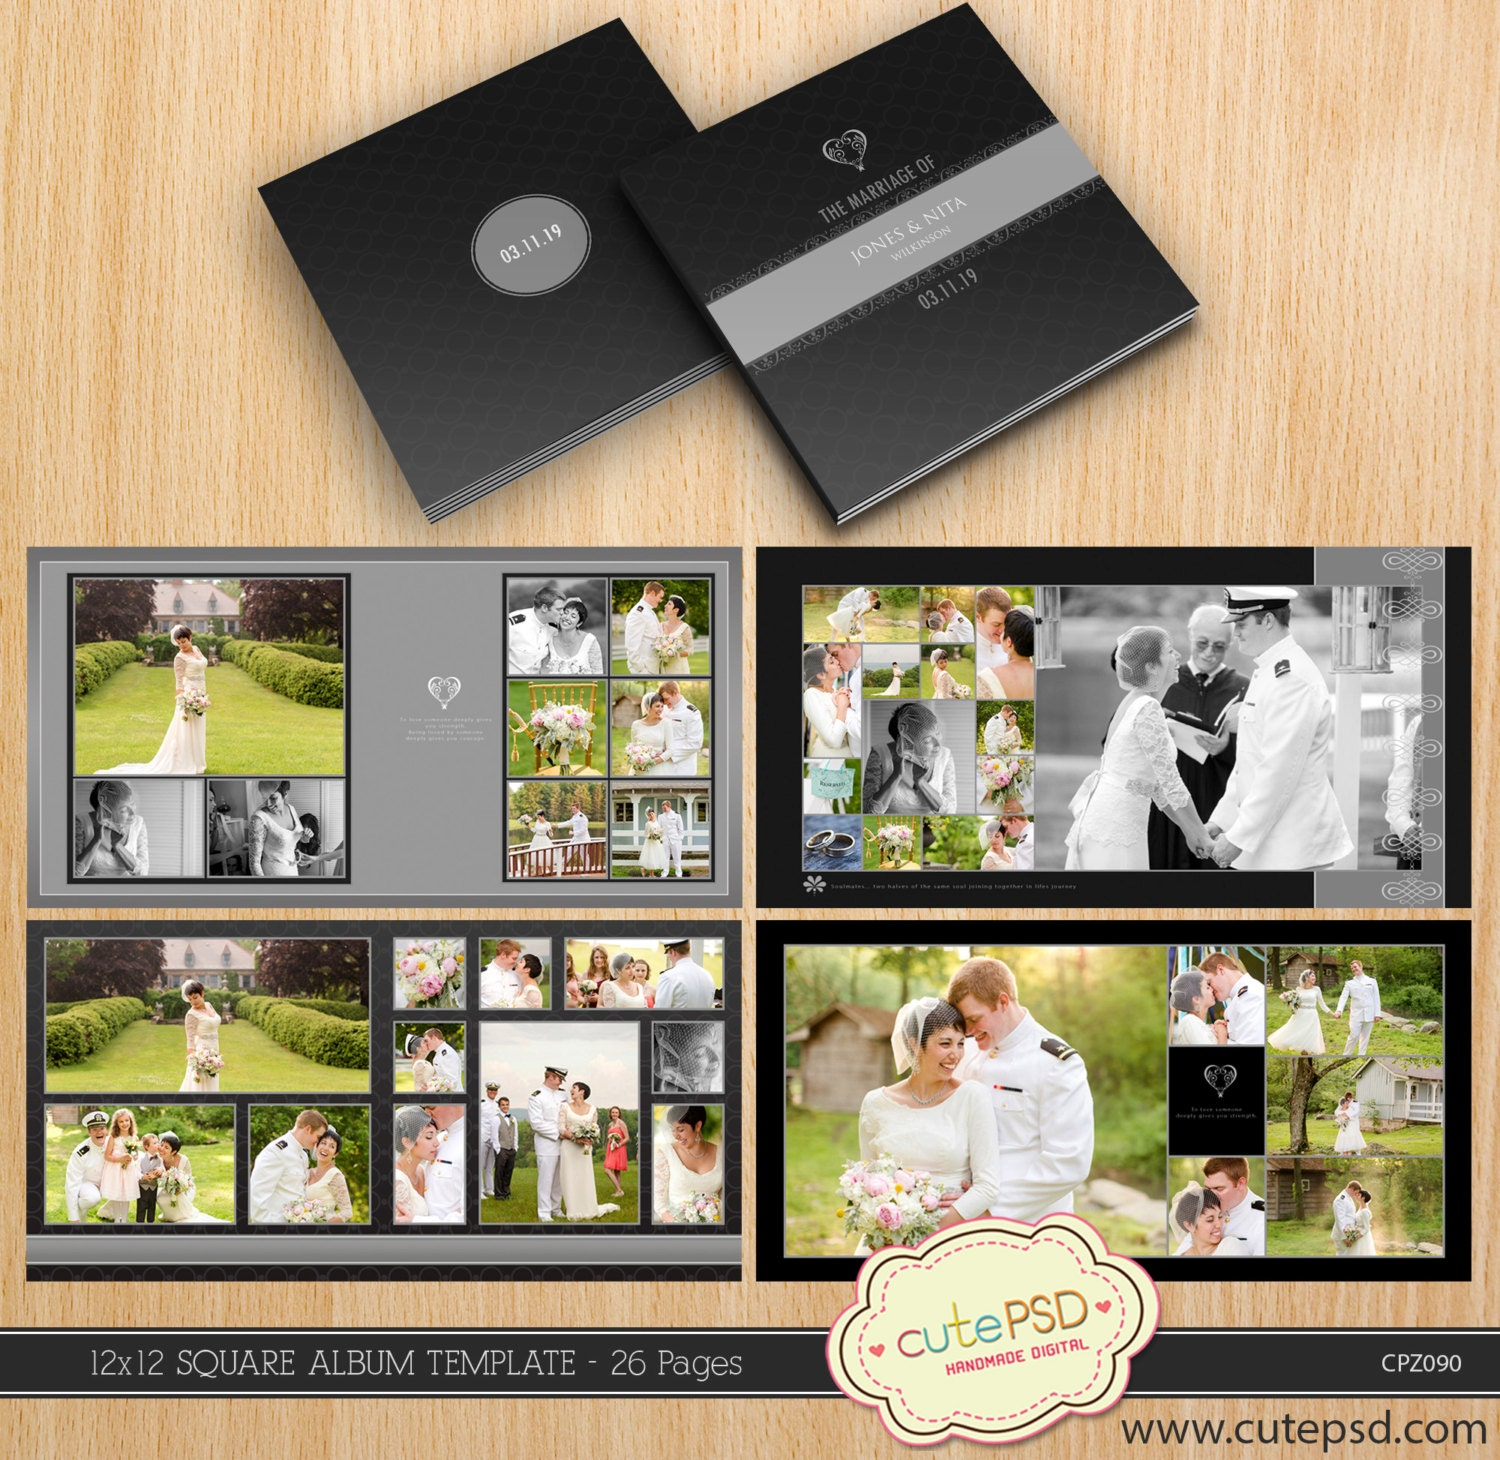 12x12 square wedding album template 26 pages modern dark cpz090 cute psd. Black Bedroom Furniture Sets. Home Design Ideas